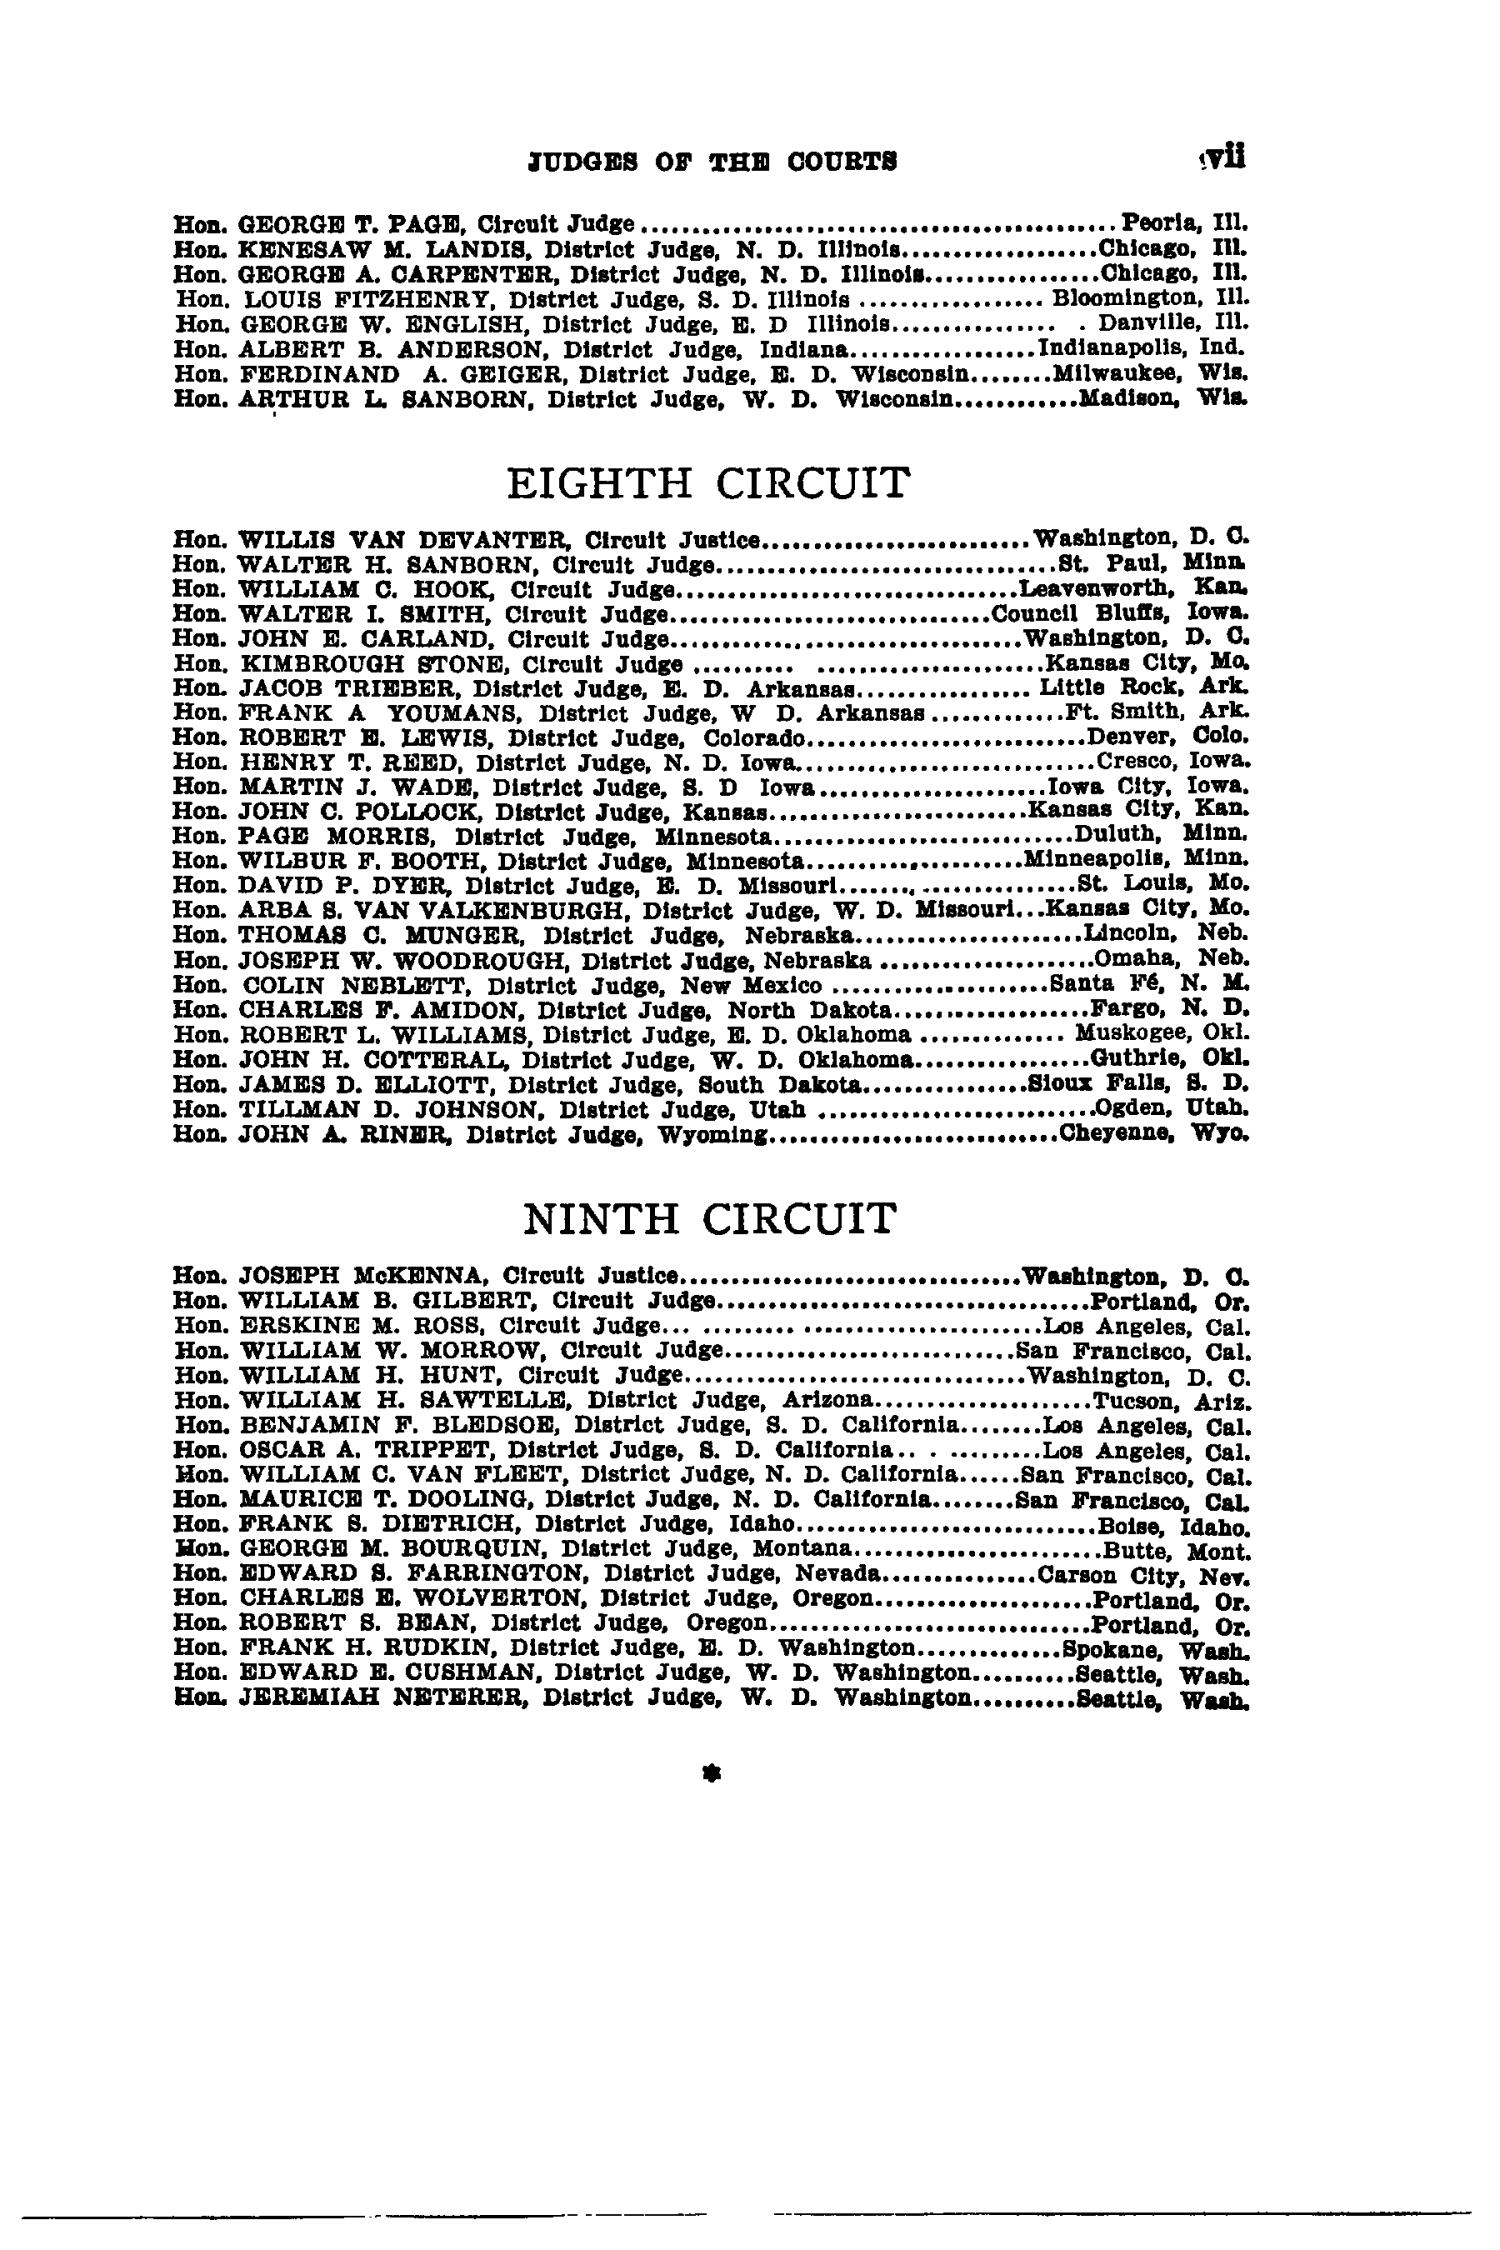 The Federal Reporter with Key-Number Annotations, Volume 256: Cases Argued and Determined in the Circuit Courts of Appeals and District Courts of the United States, May-July, 1919.                                                                                                      VII